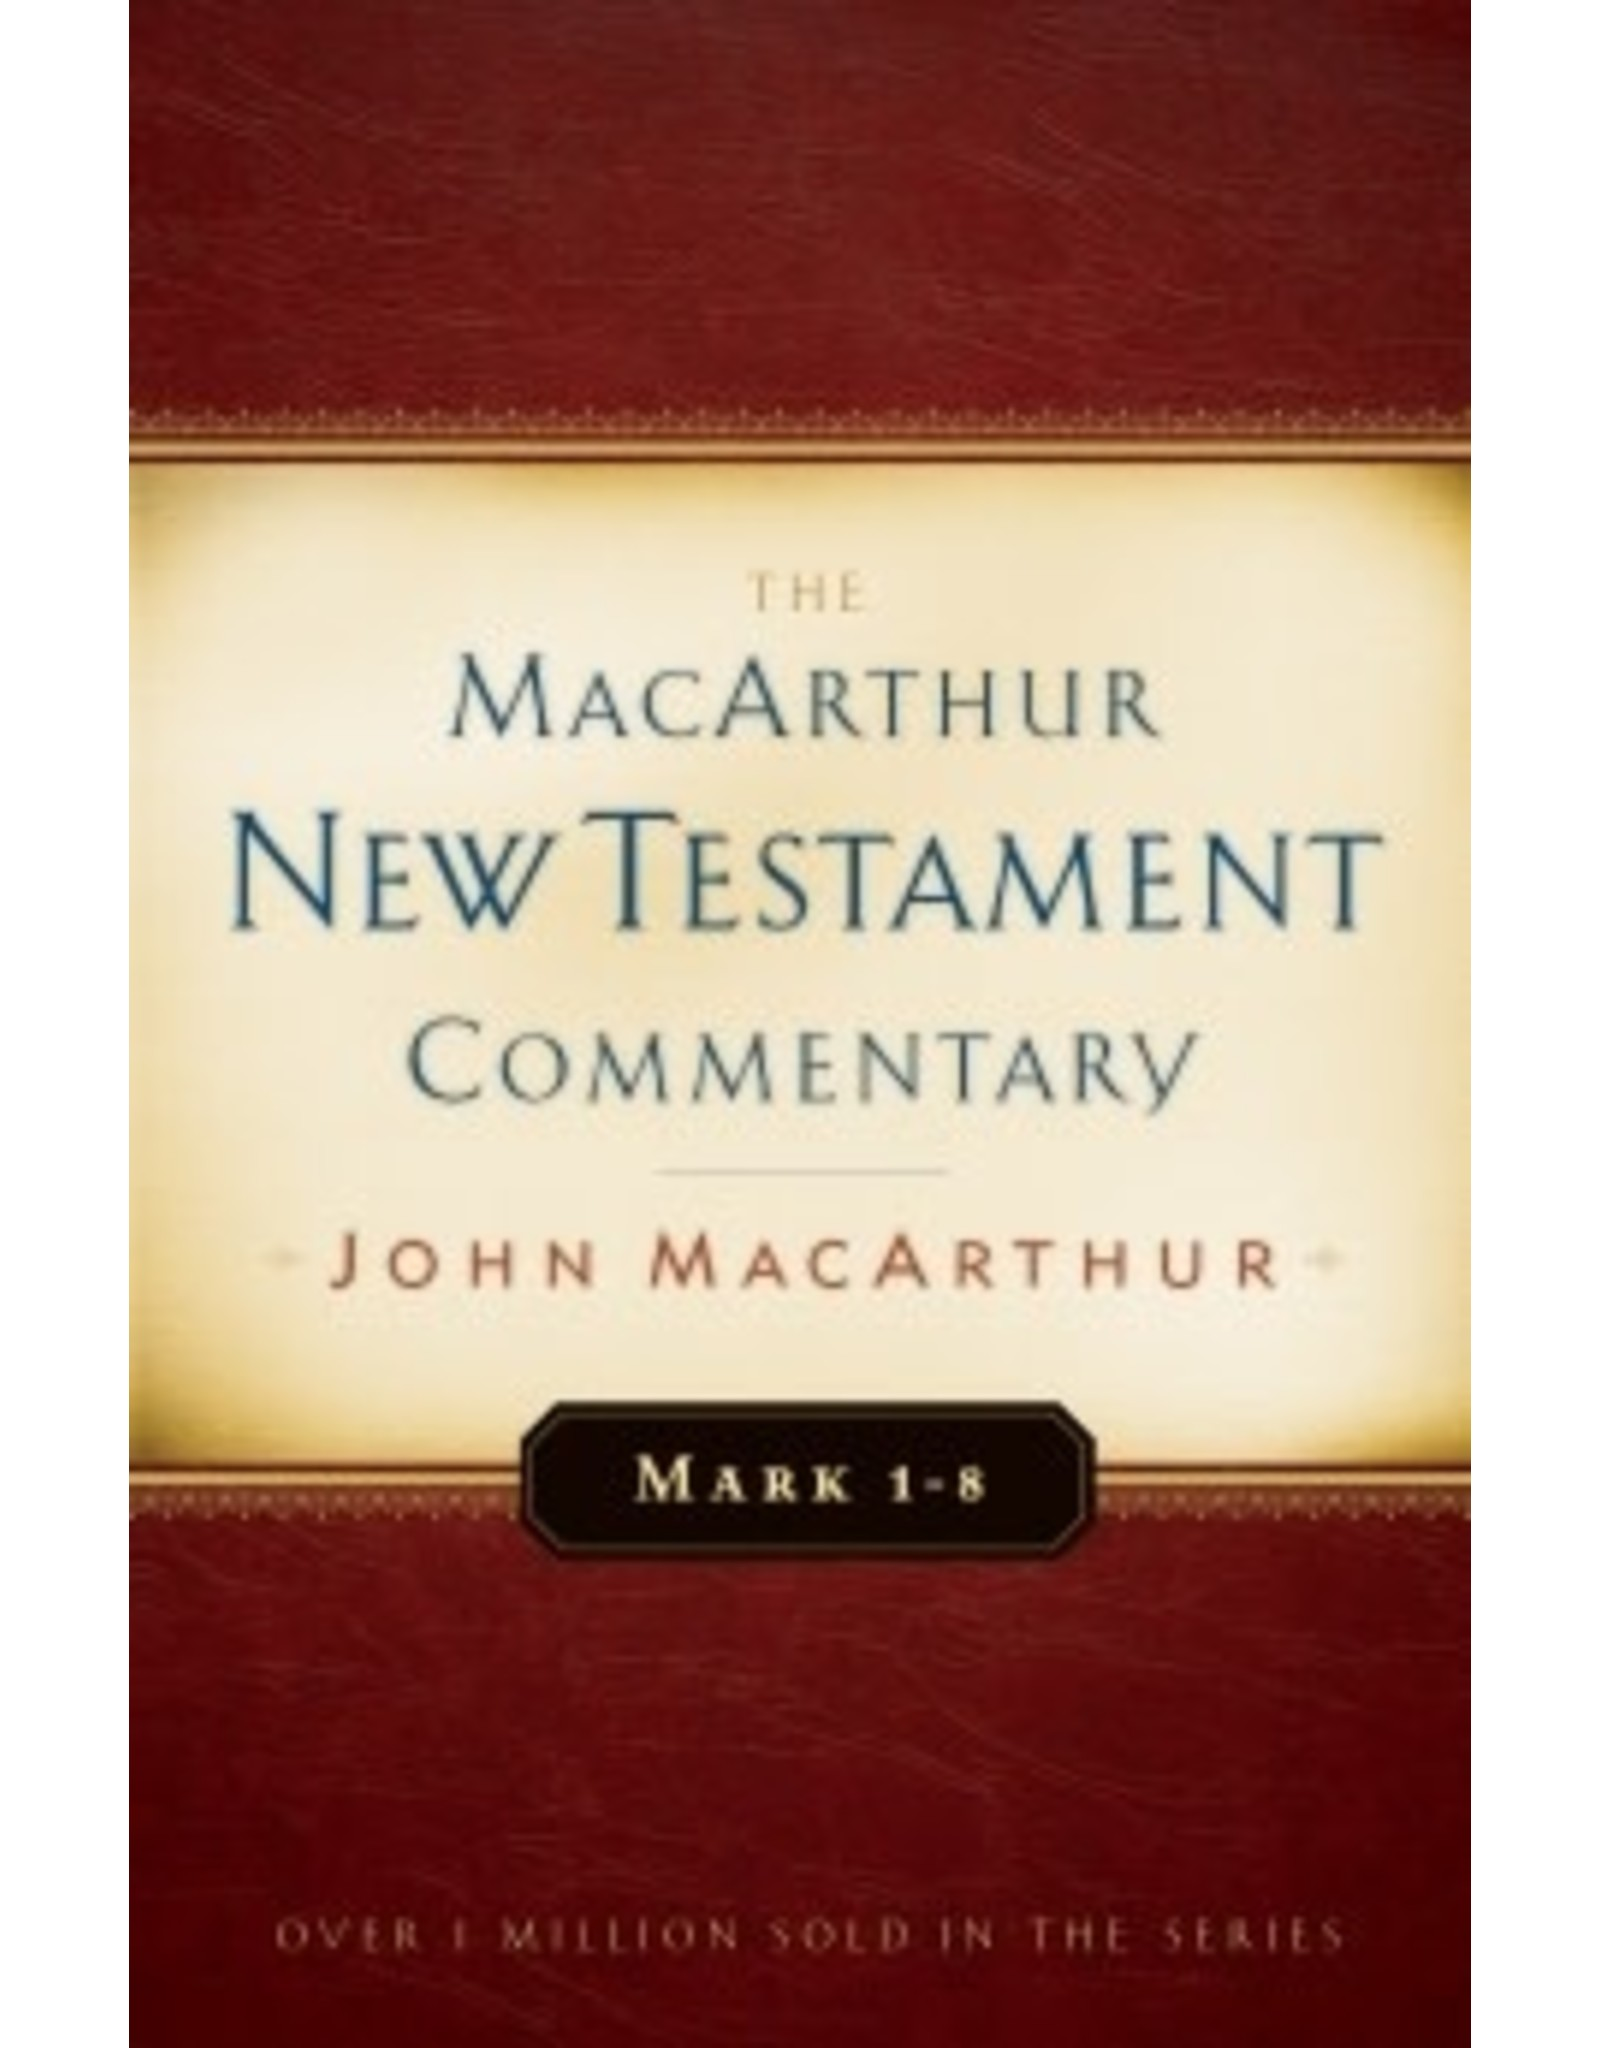 MacArthur MacArthur Commentary - Mark 1 - 8